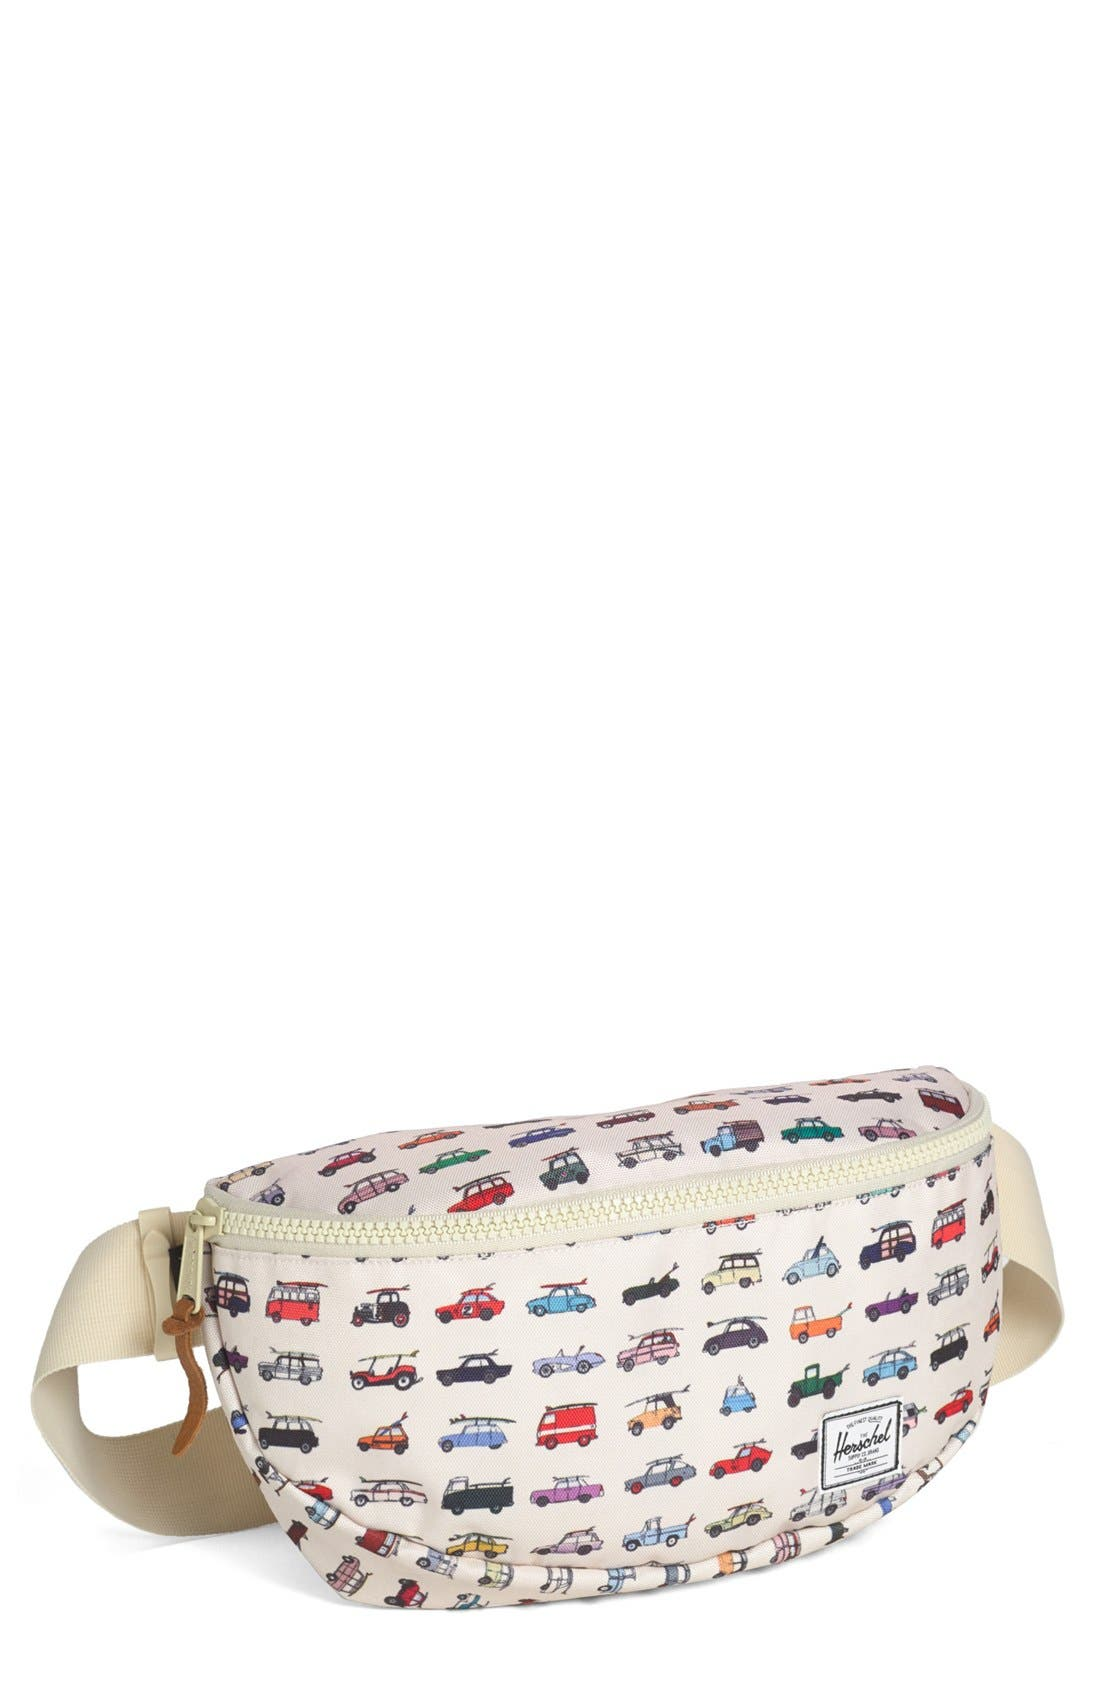 Alternate Image 1 Selected - Herschel Supply Co. 'Sixteen - Rad Cars with Rad Surfboards Collection' Hip Pack